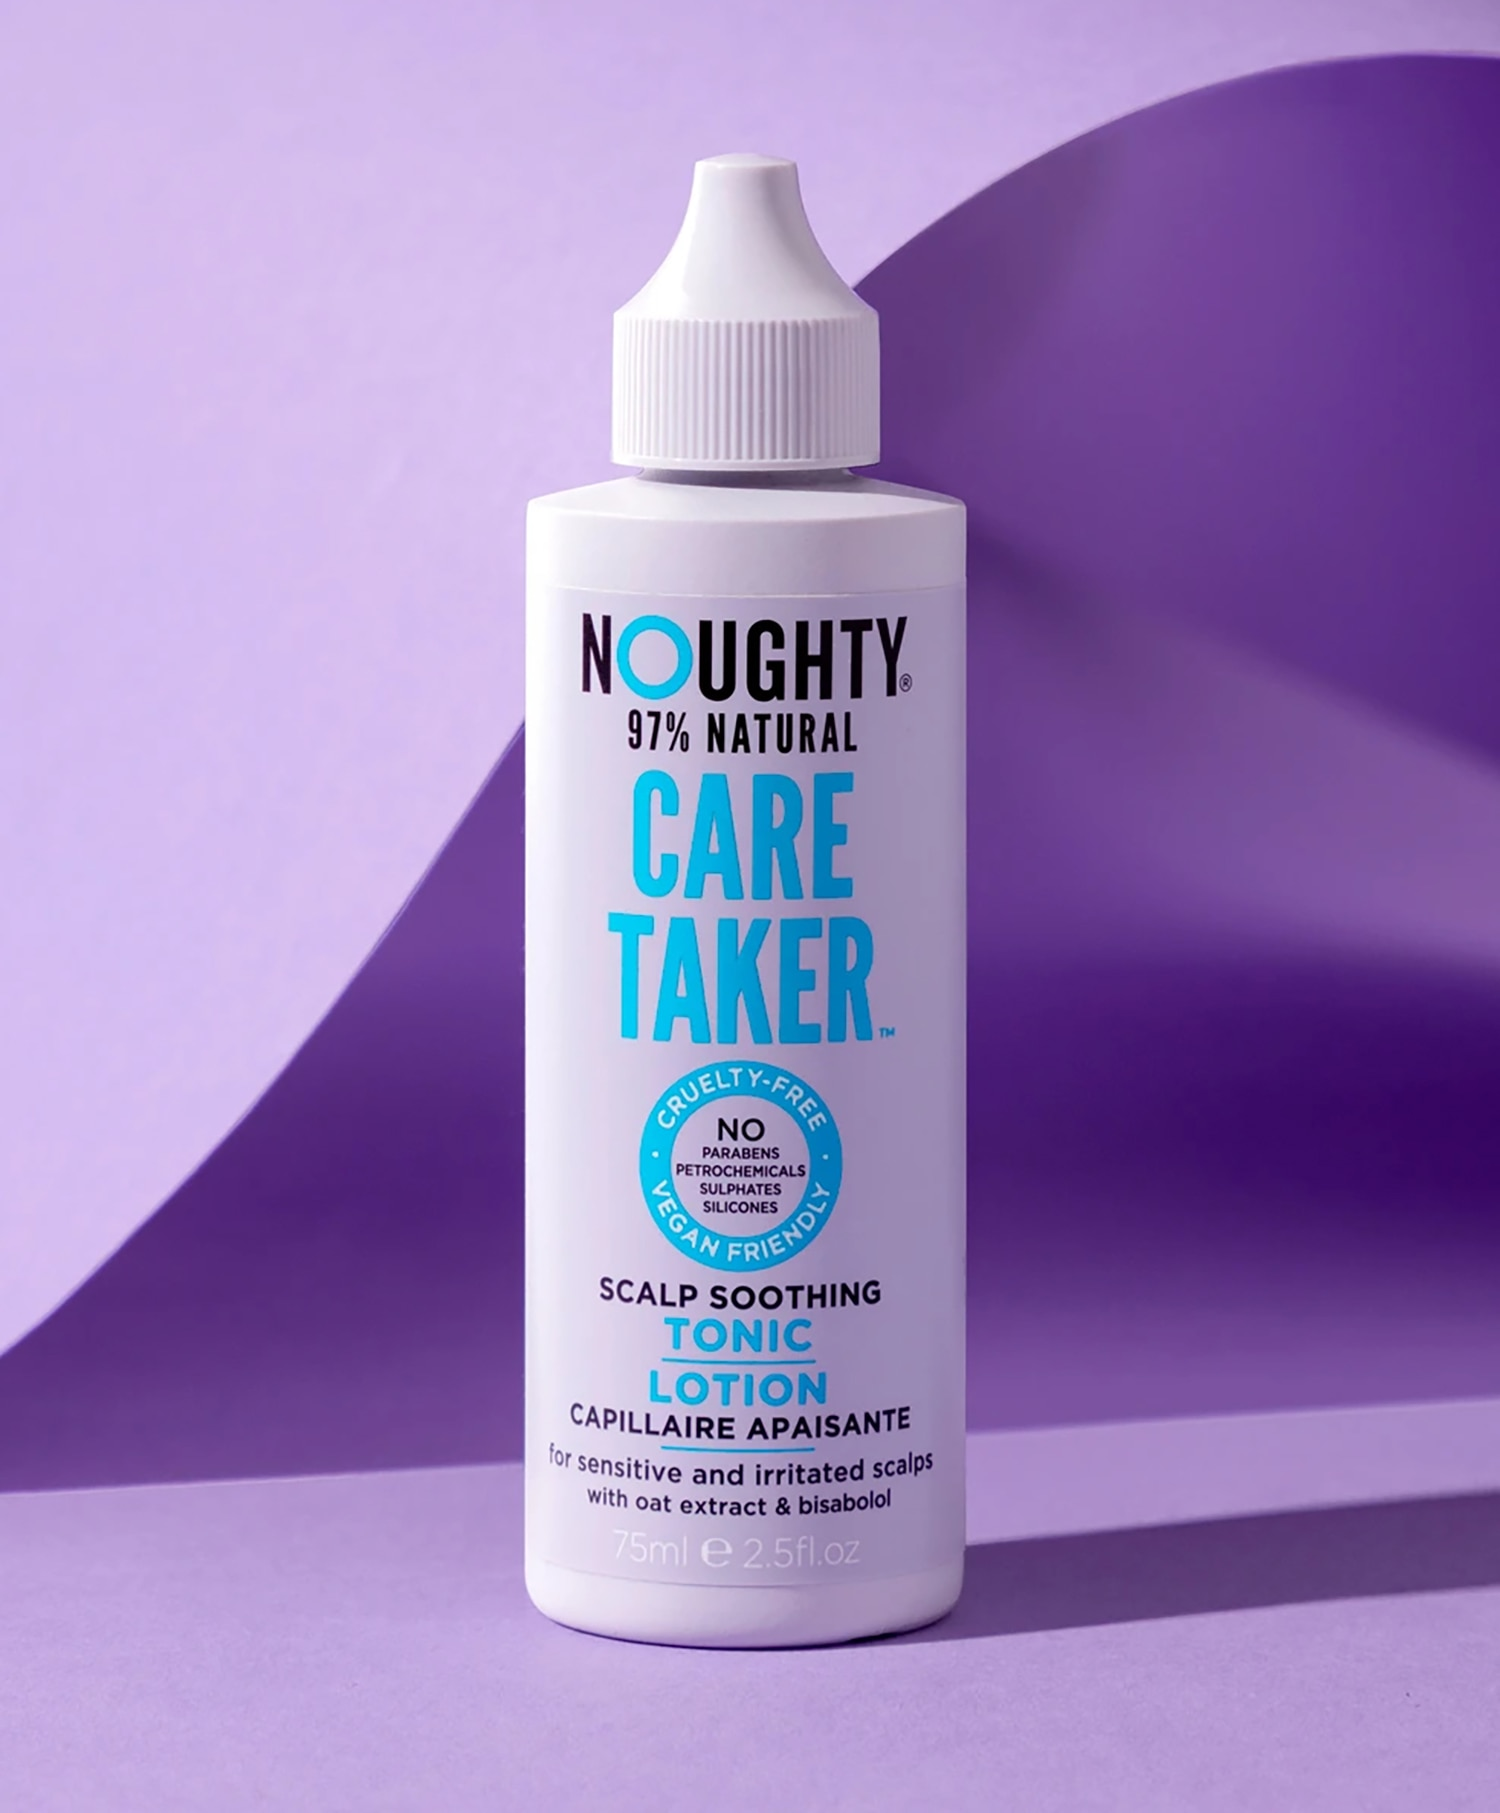 Noughty Scalp Soothing Tonic